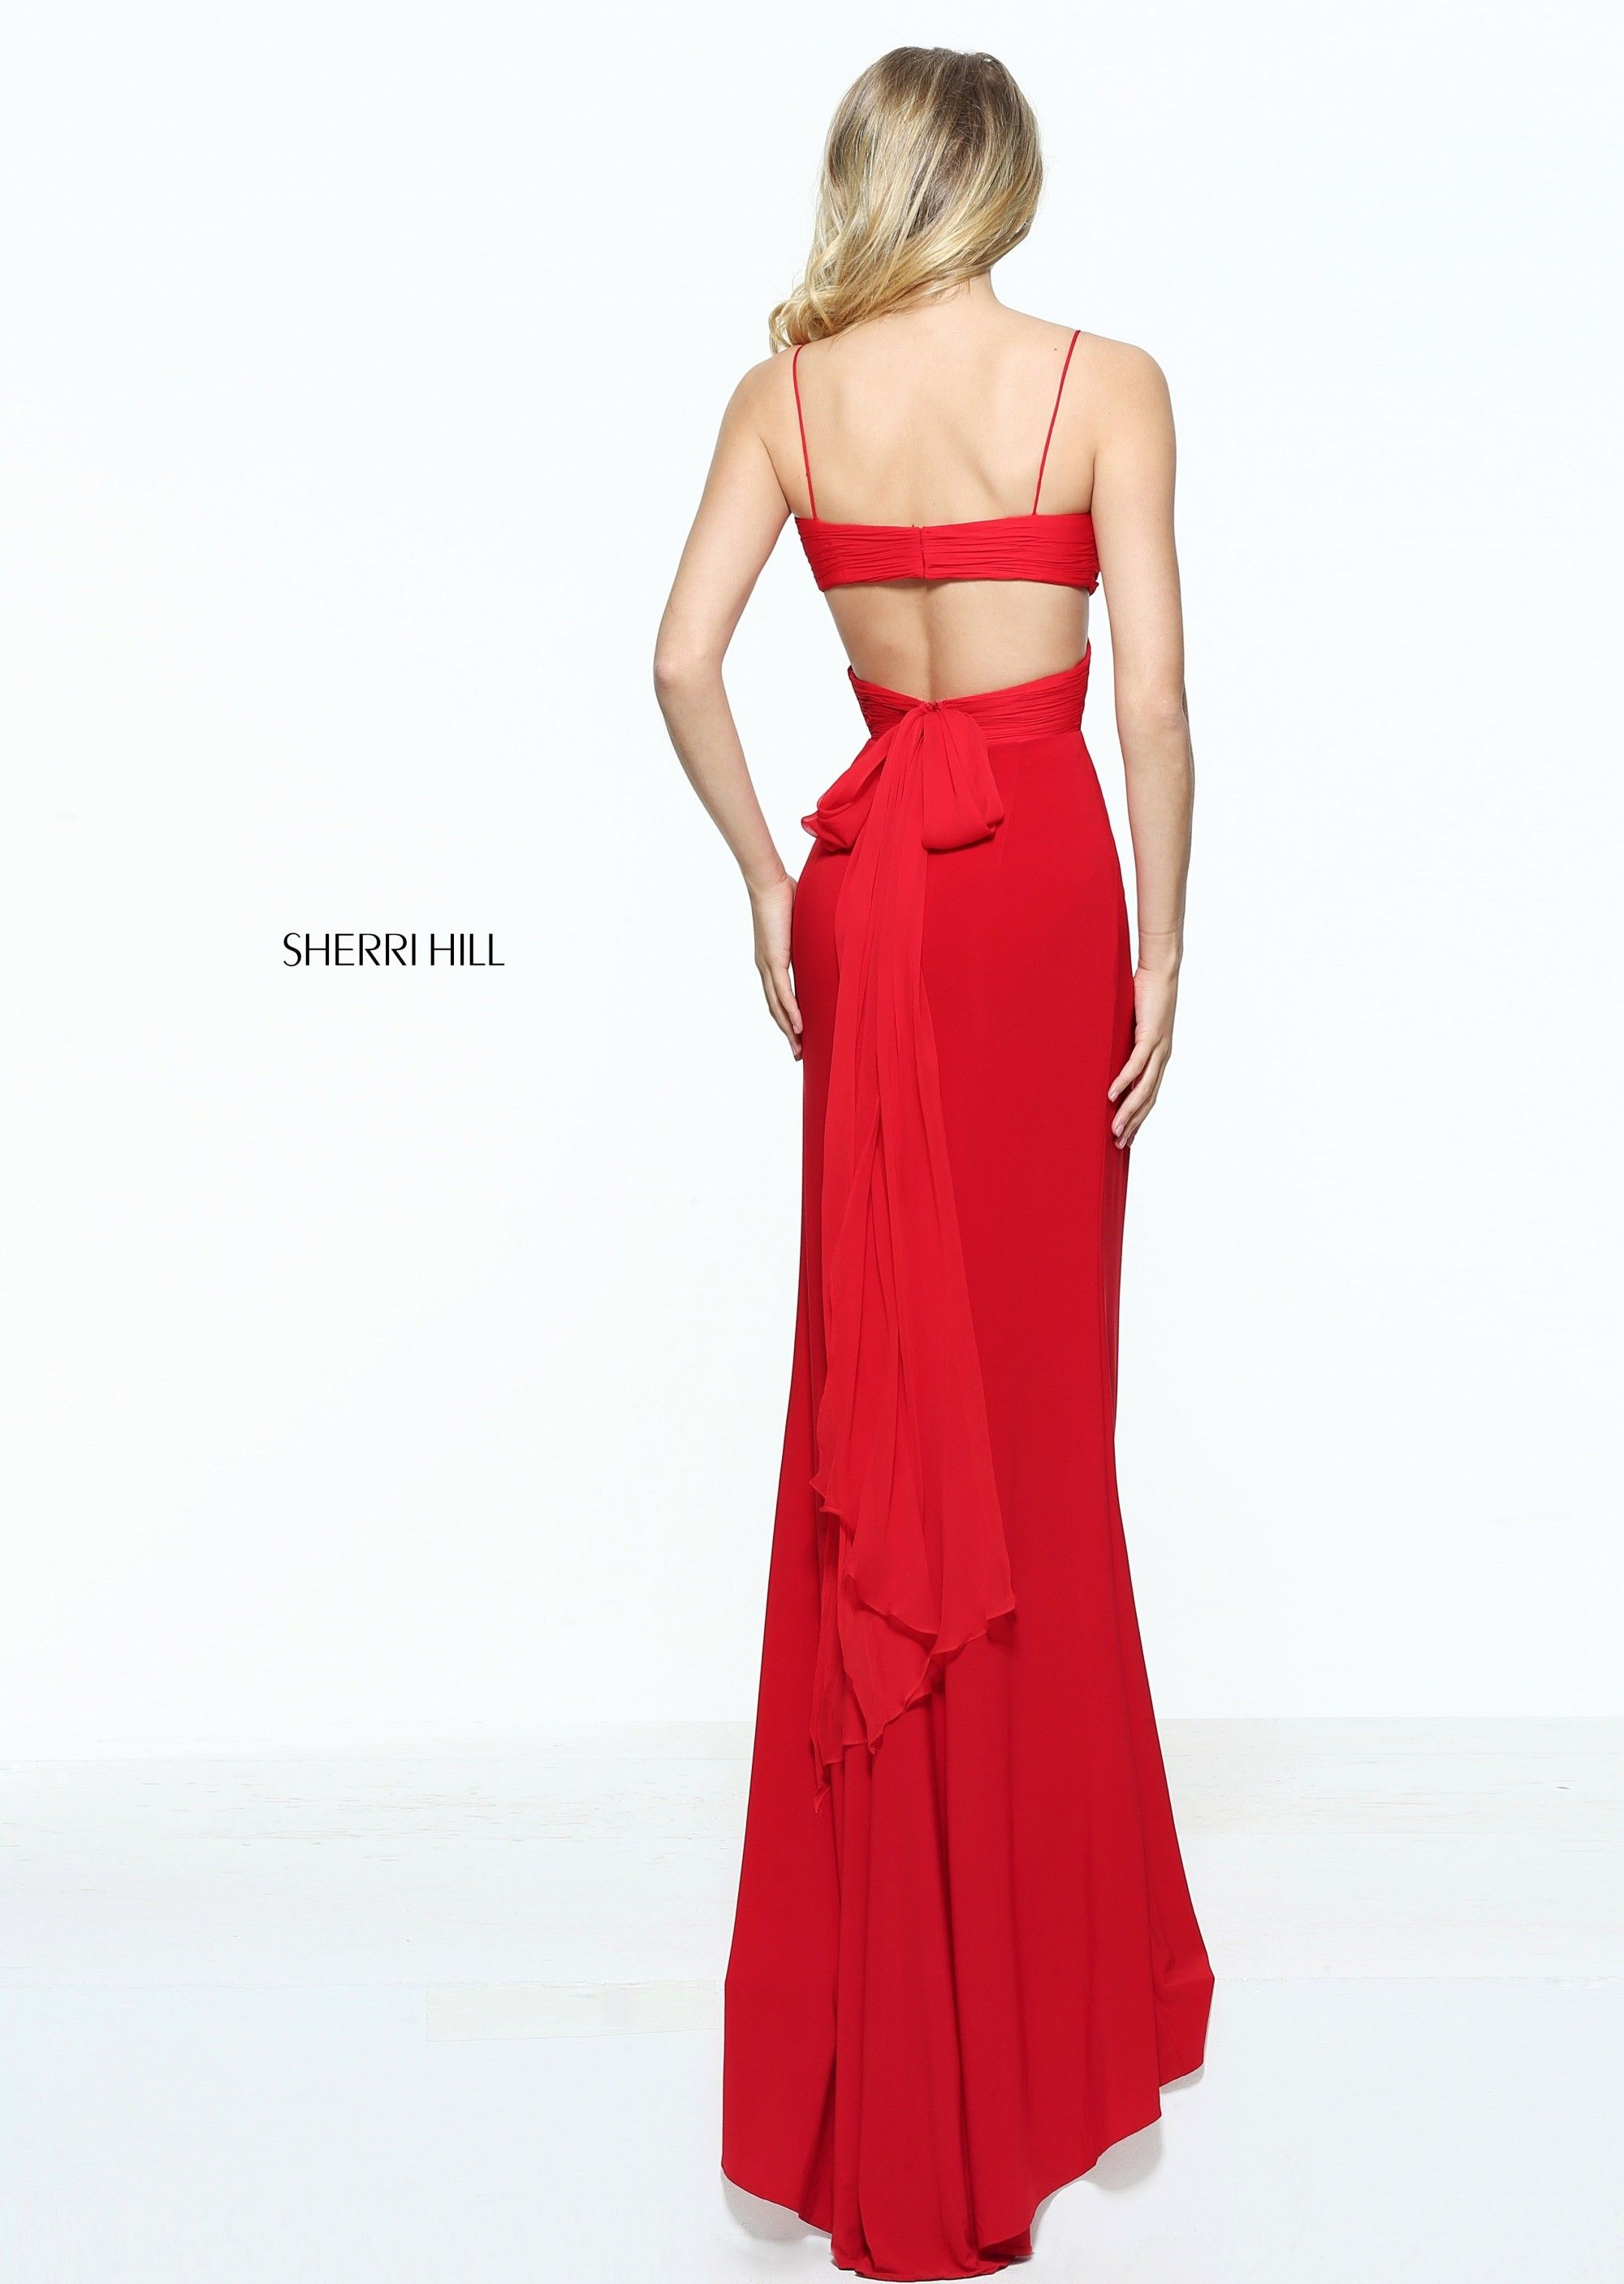 Sherri Hill 51012 Prom Dress. #sherrihill #promdress #prom